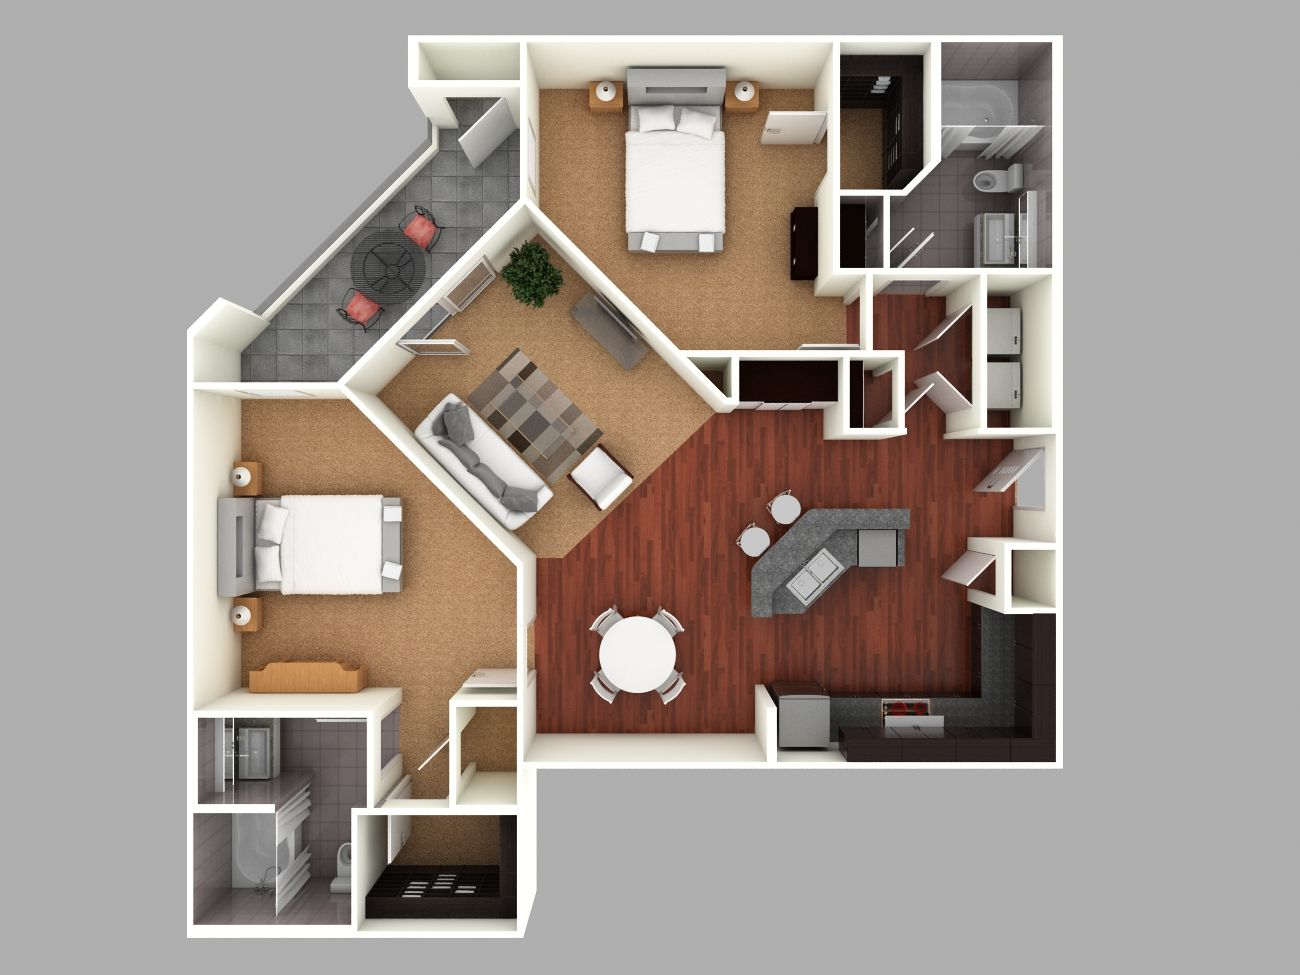 3d House Plans architecture the remarakble 3d house floor plan layout tool and there are many rooms in 3d Colored Floor Plan